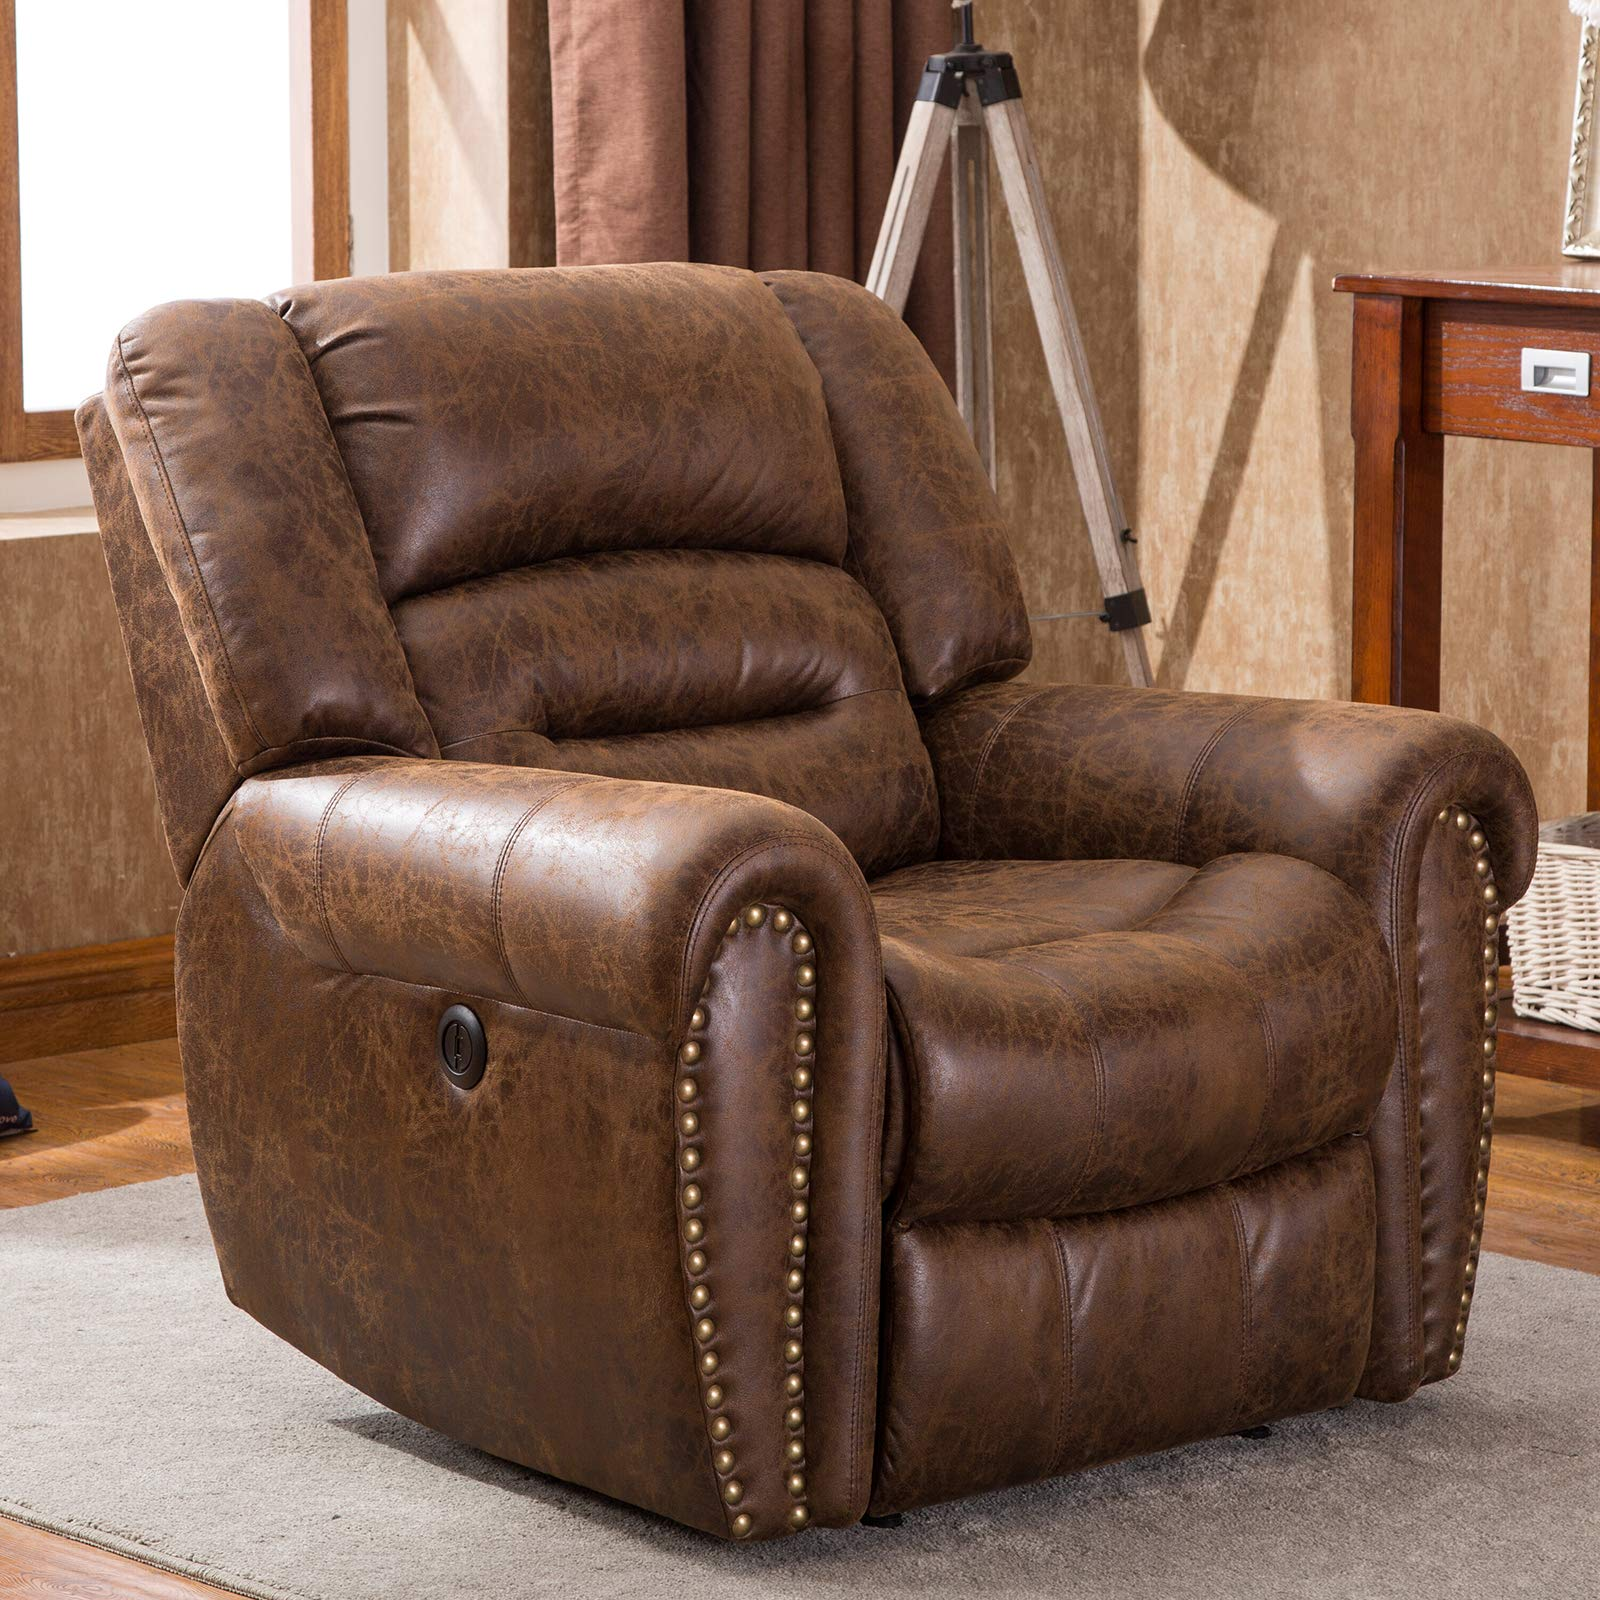 ANJ Electric Recliner Chair W/Breathable Bonded Leather, Classic Single Sofa Home Theater Recliner Seating W/USB Port, Nut Brown by ANJ